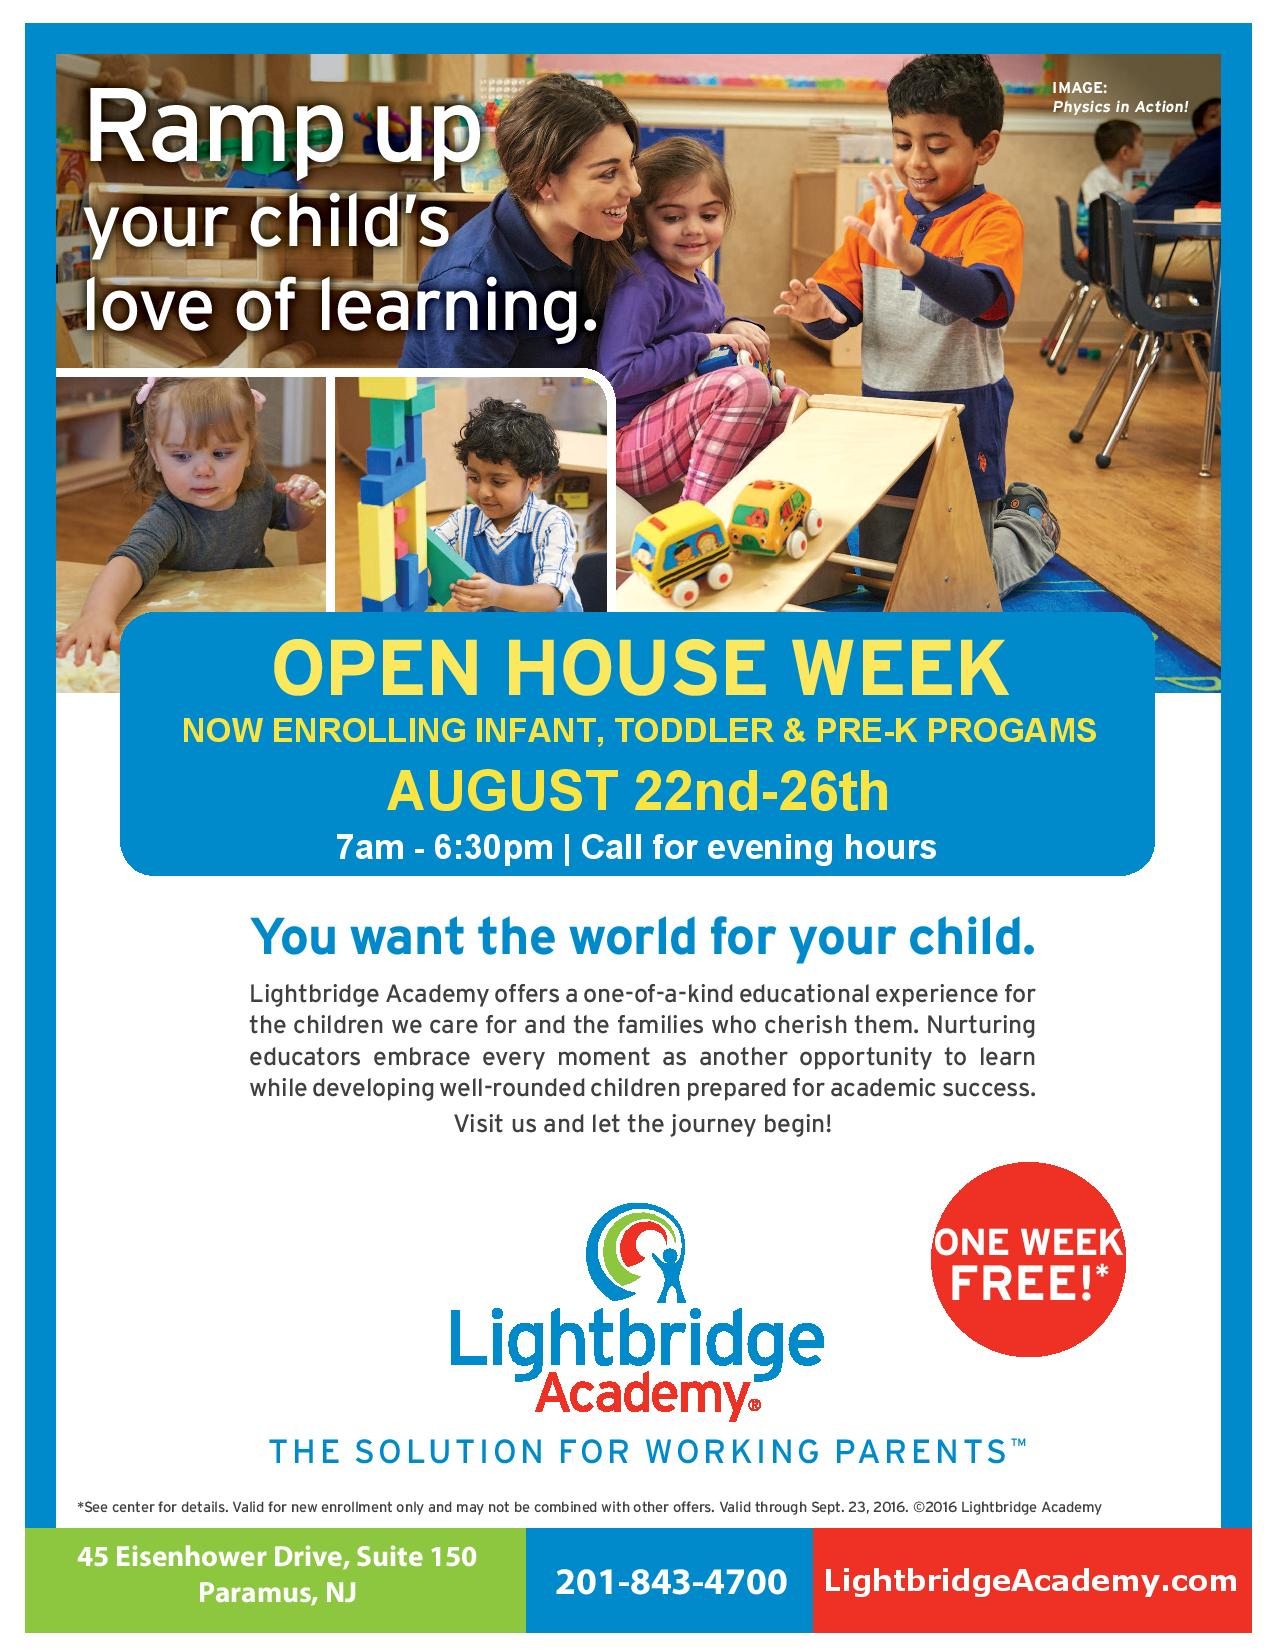 Lightbridge Academy of Paramus Open House Week